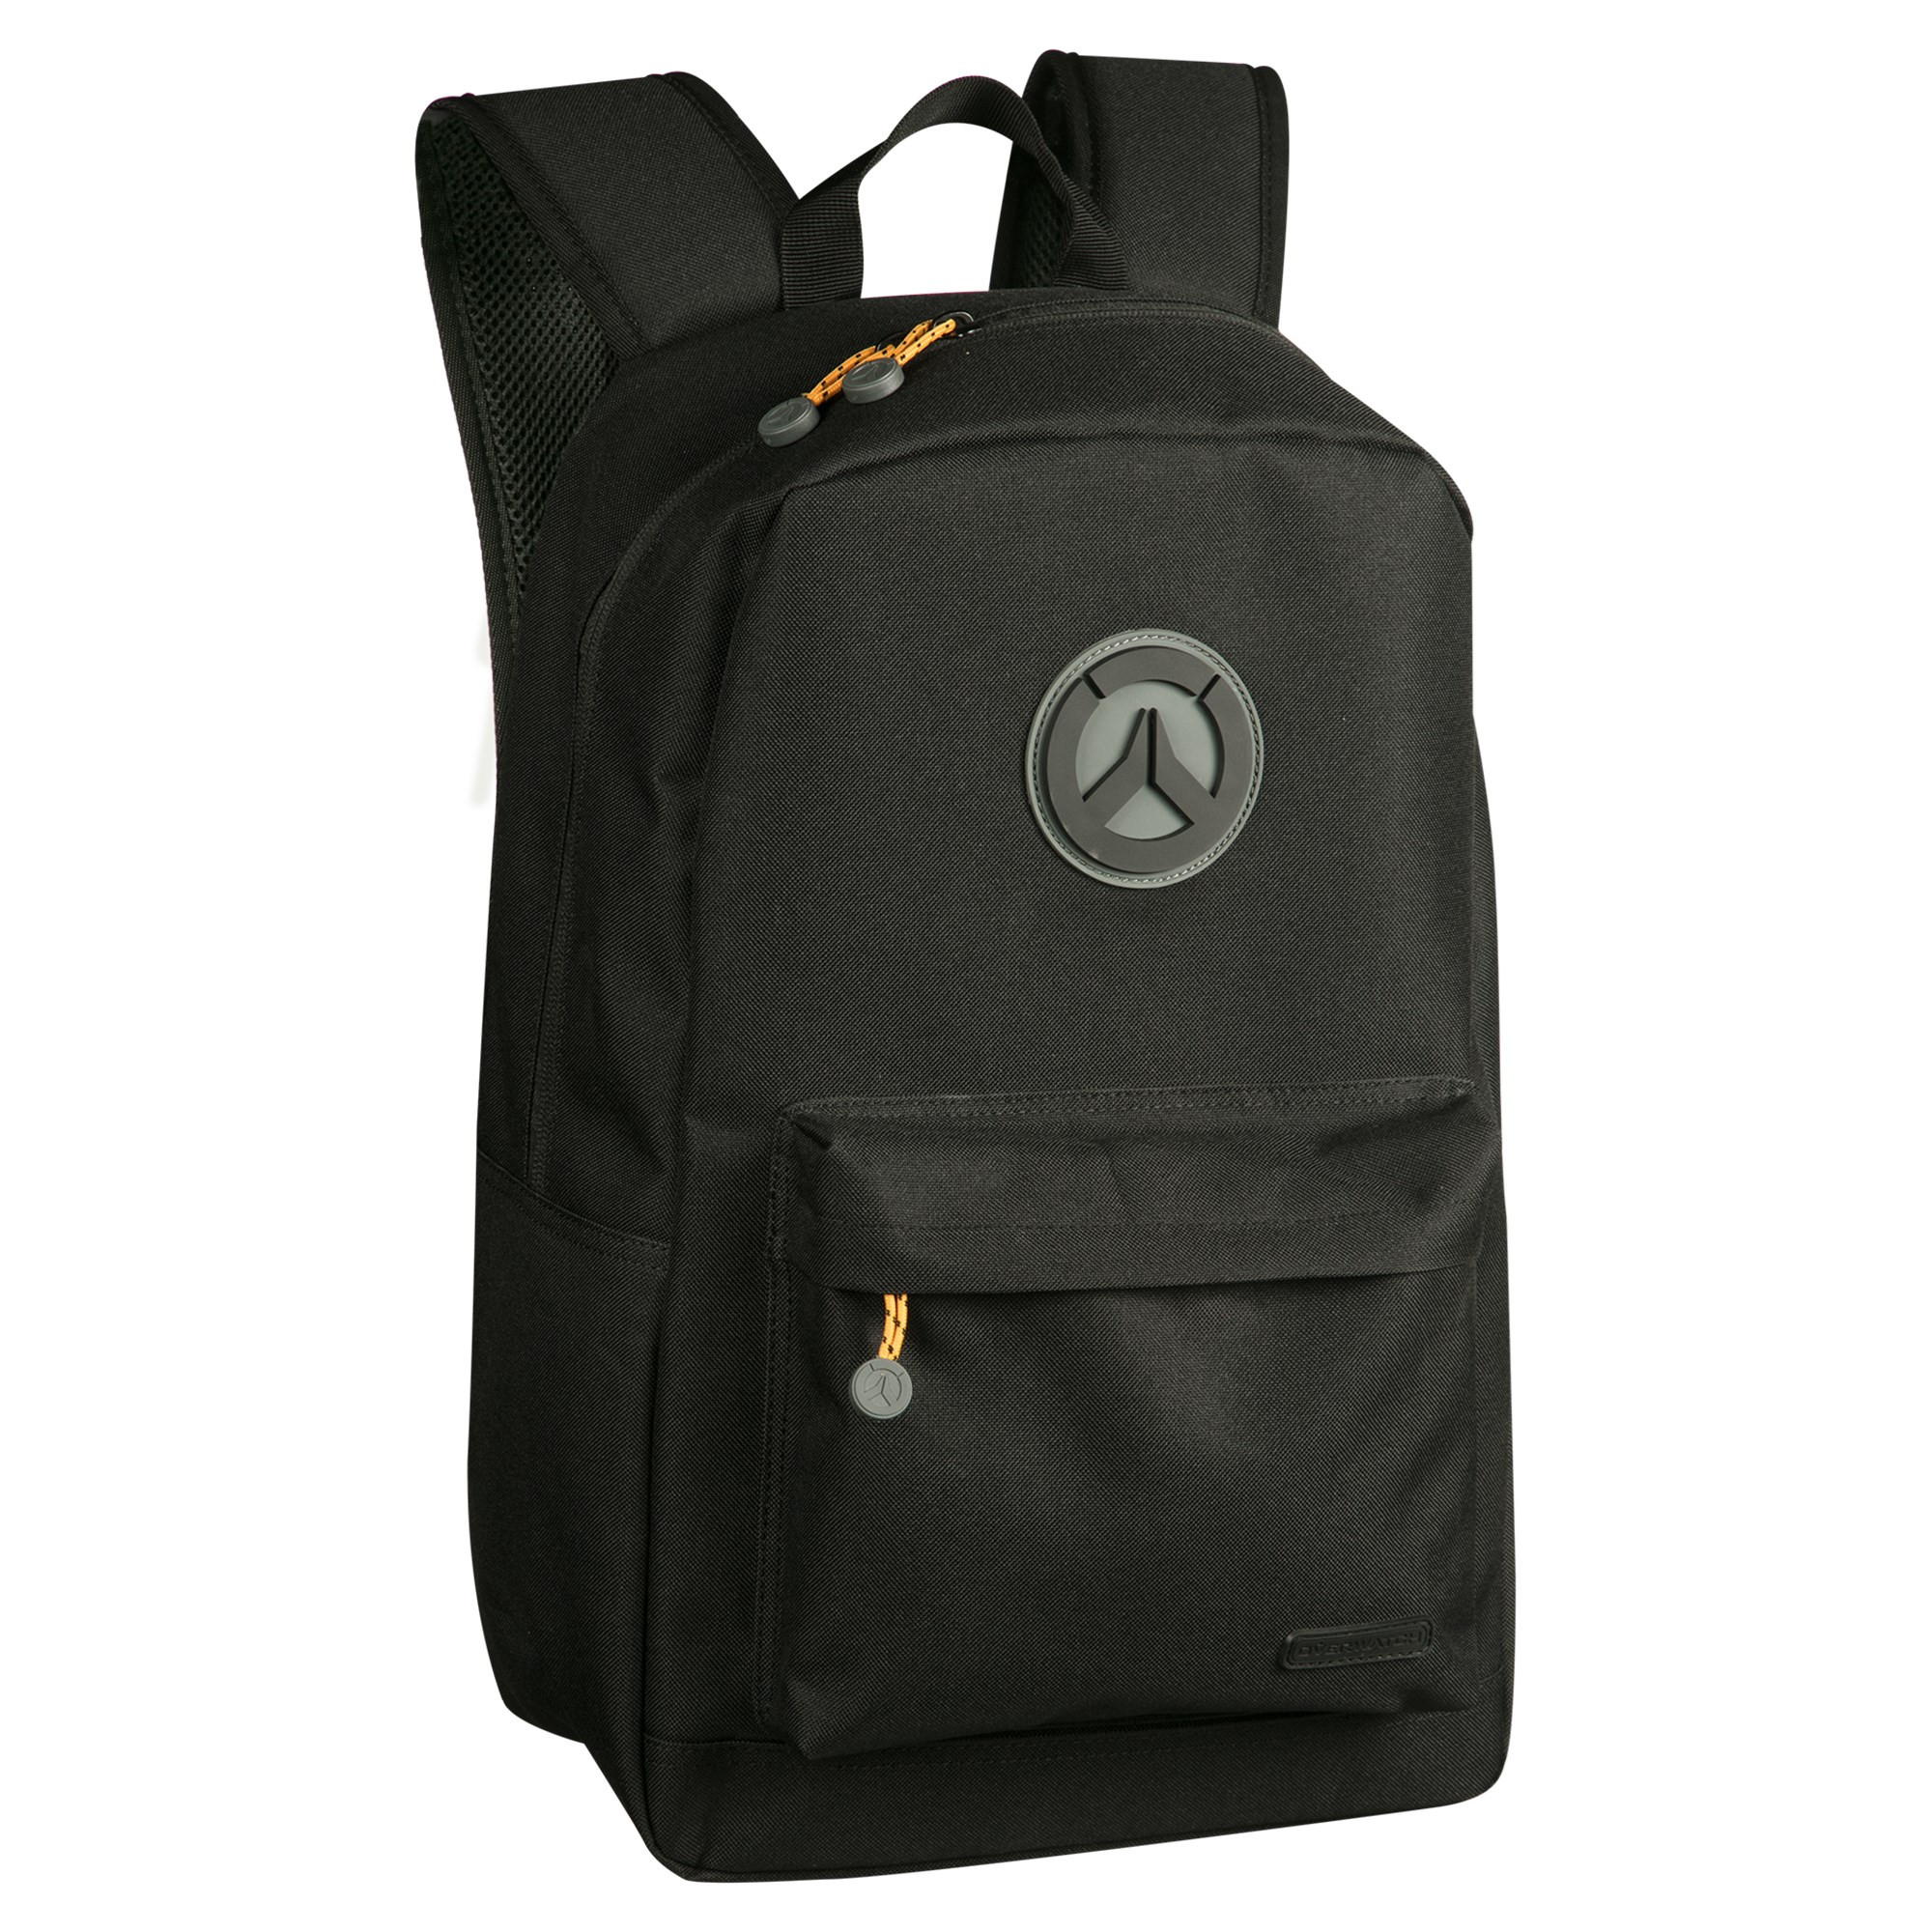 Ranac Overwatch Blackout Backpack